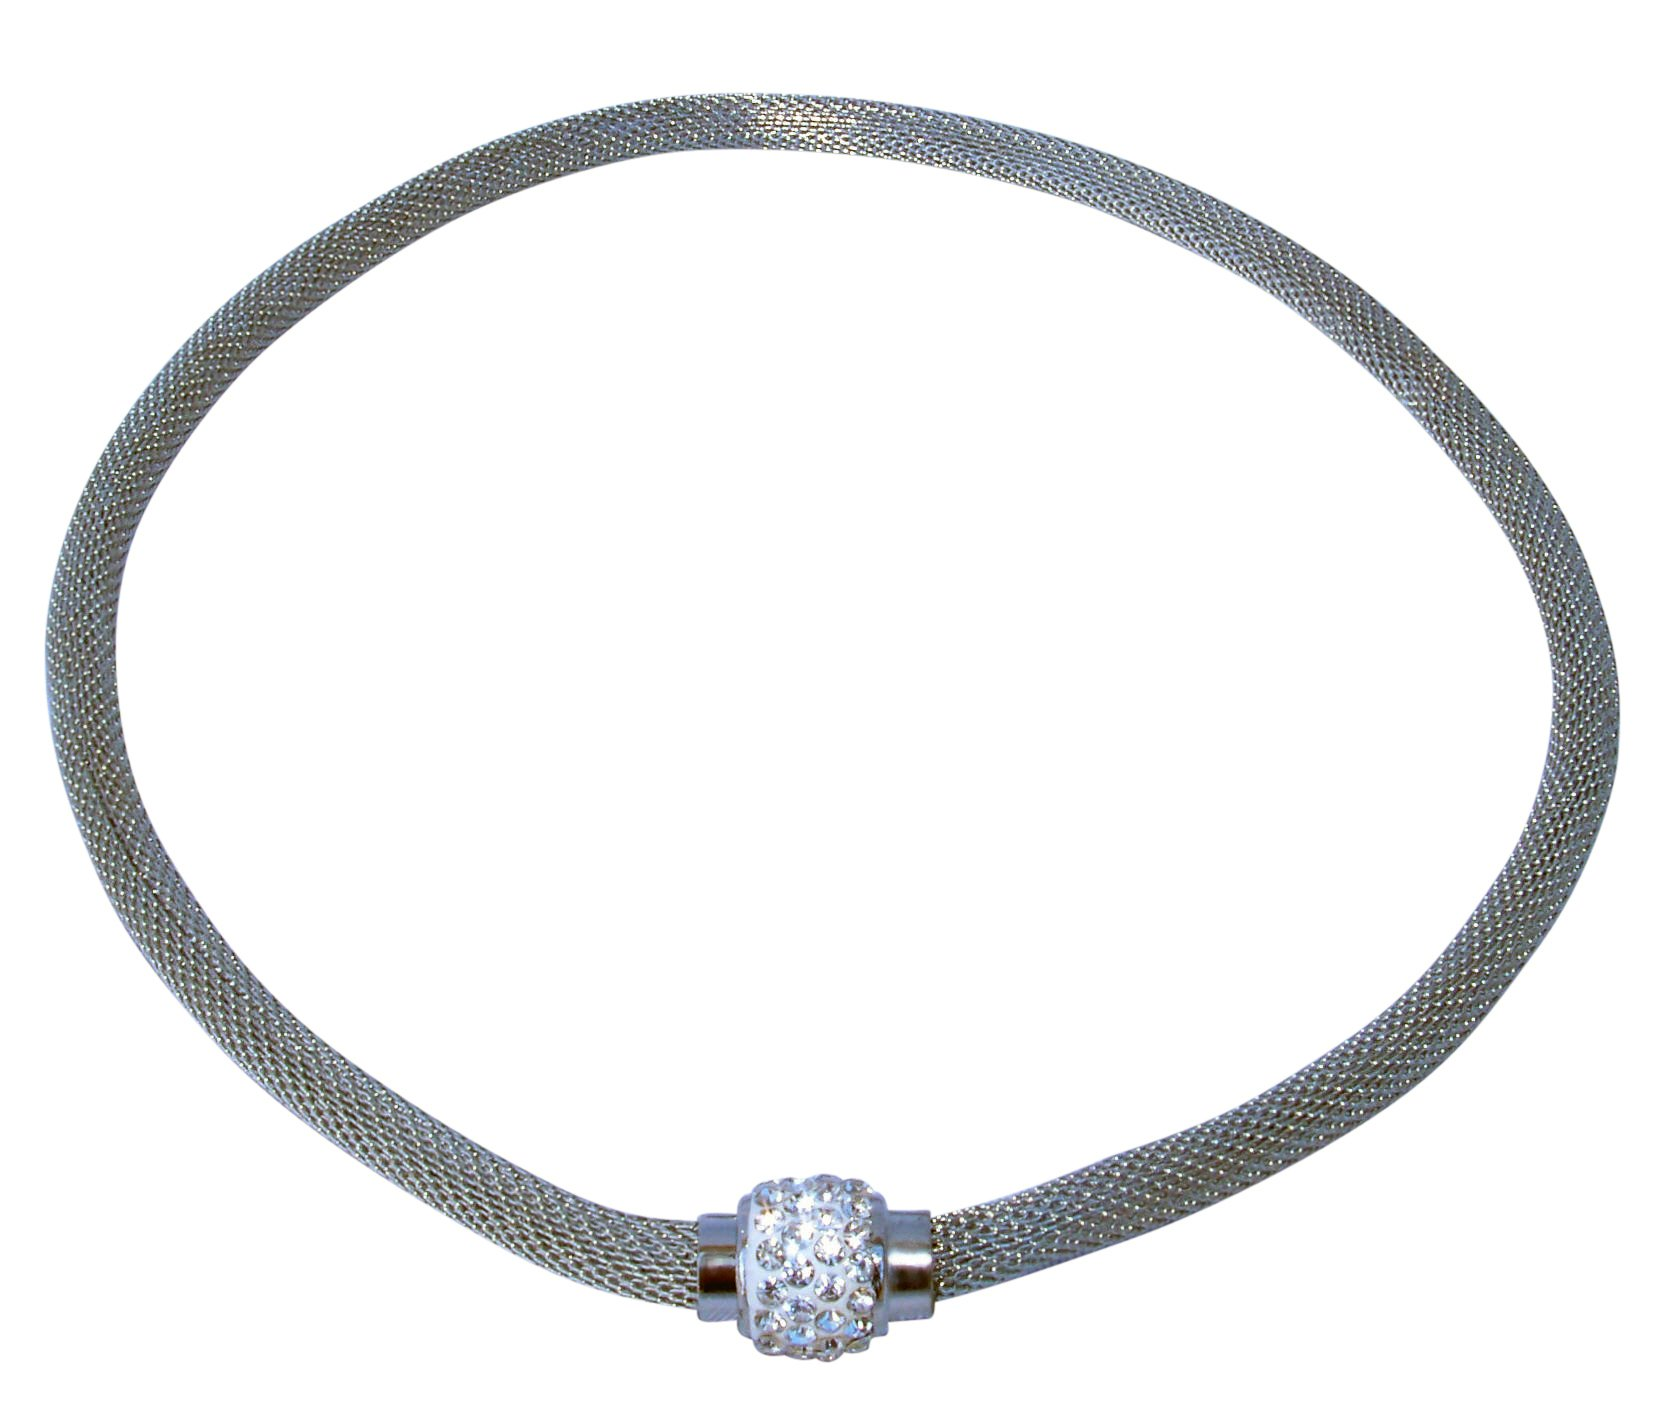 Stainless Steel Mesh Necklace with Magnetic Clasp